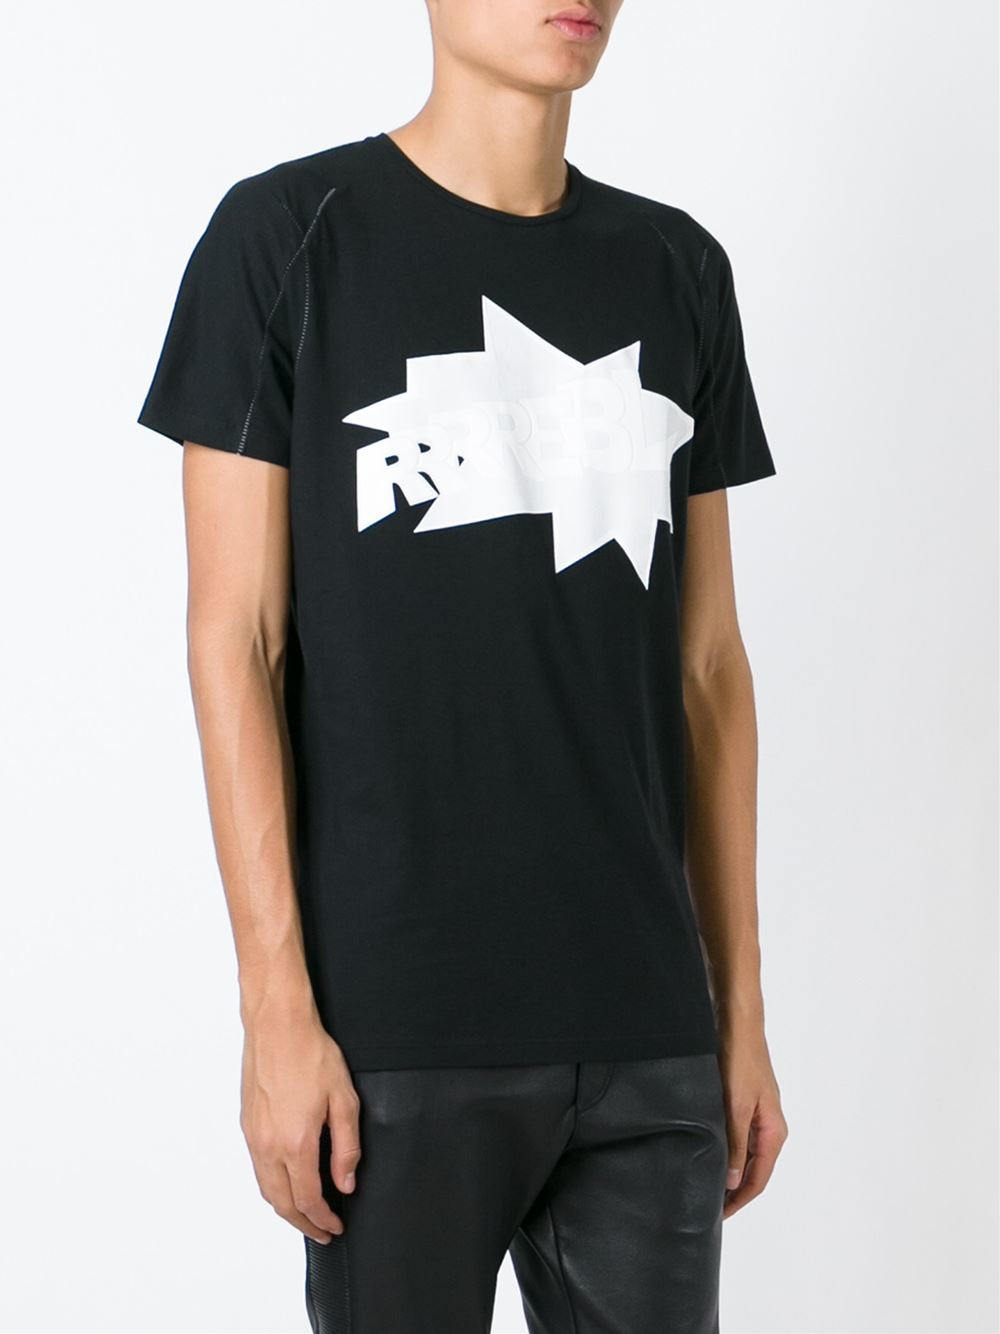 A T-shirt (or t shirt, or tee) is a style of unisex fabric shirt named after the T shape of its body and sleeves. It normally has short sleeves and a round neckline, known as a crew neck, which lacks a collar.T-shirts are generally made of a stretchy, light and inexpensive fabric and are easy to clean.